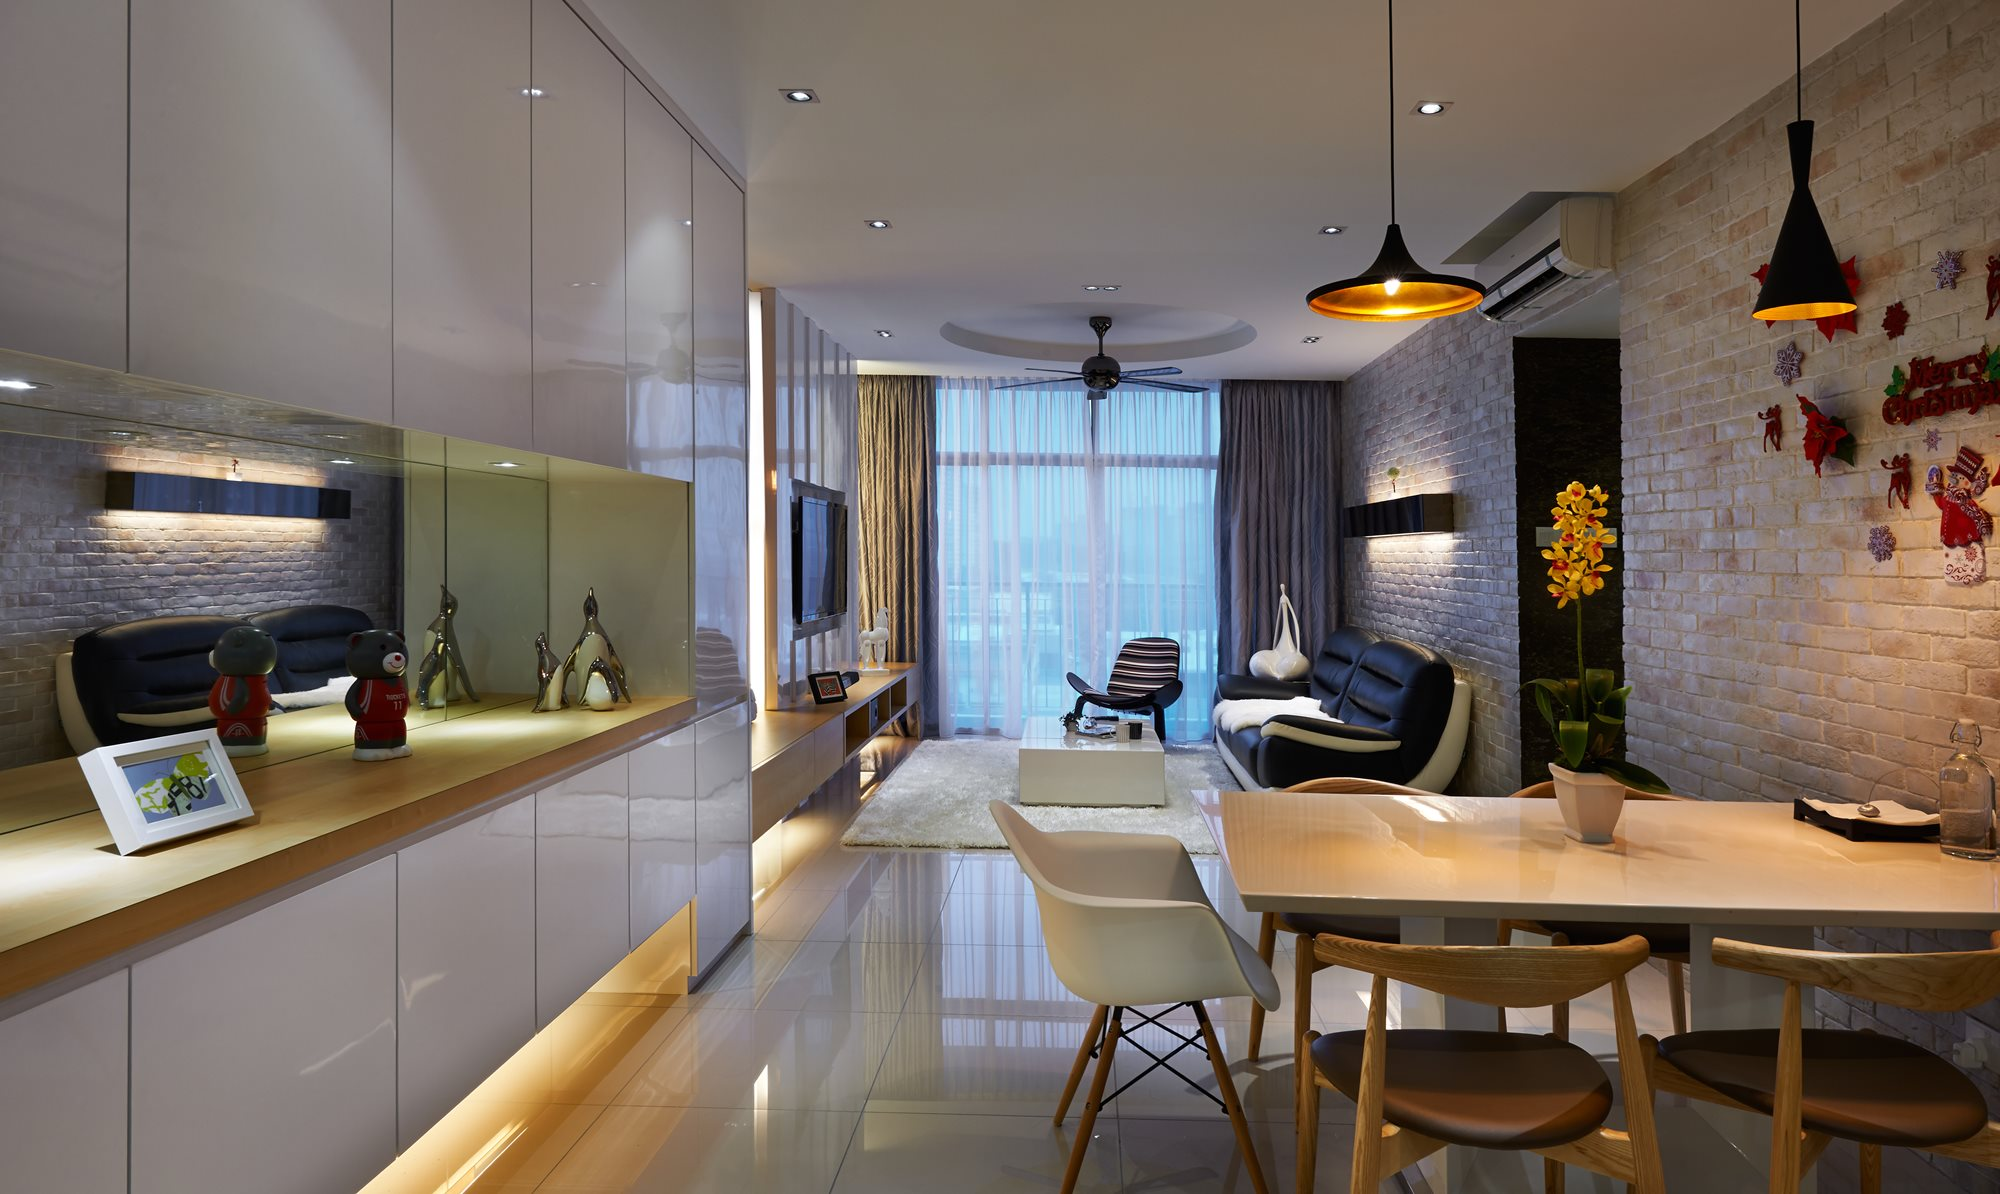 malaysia apartment interior design - photo #21